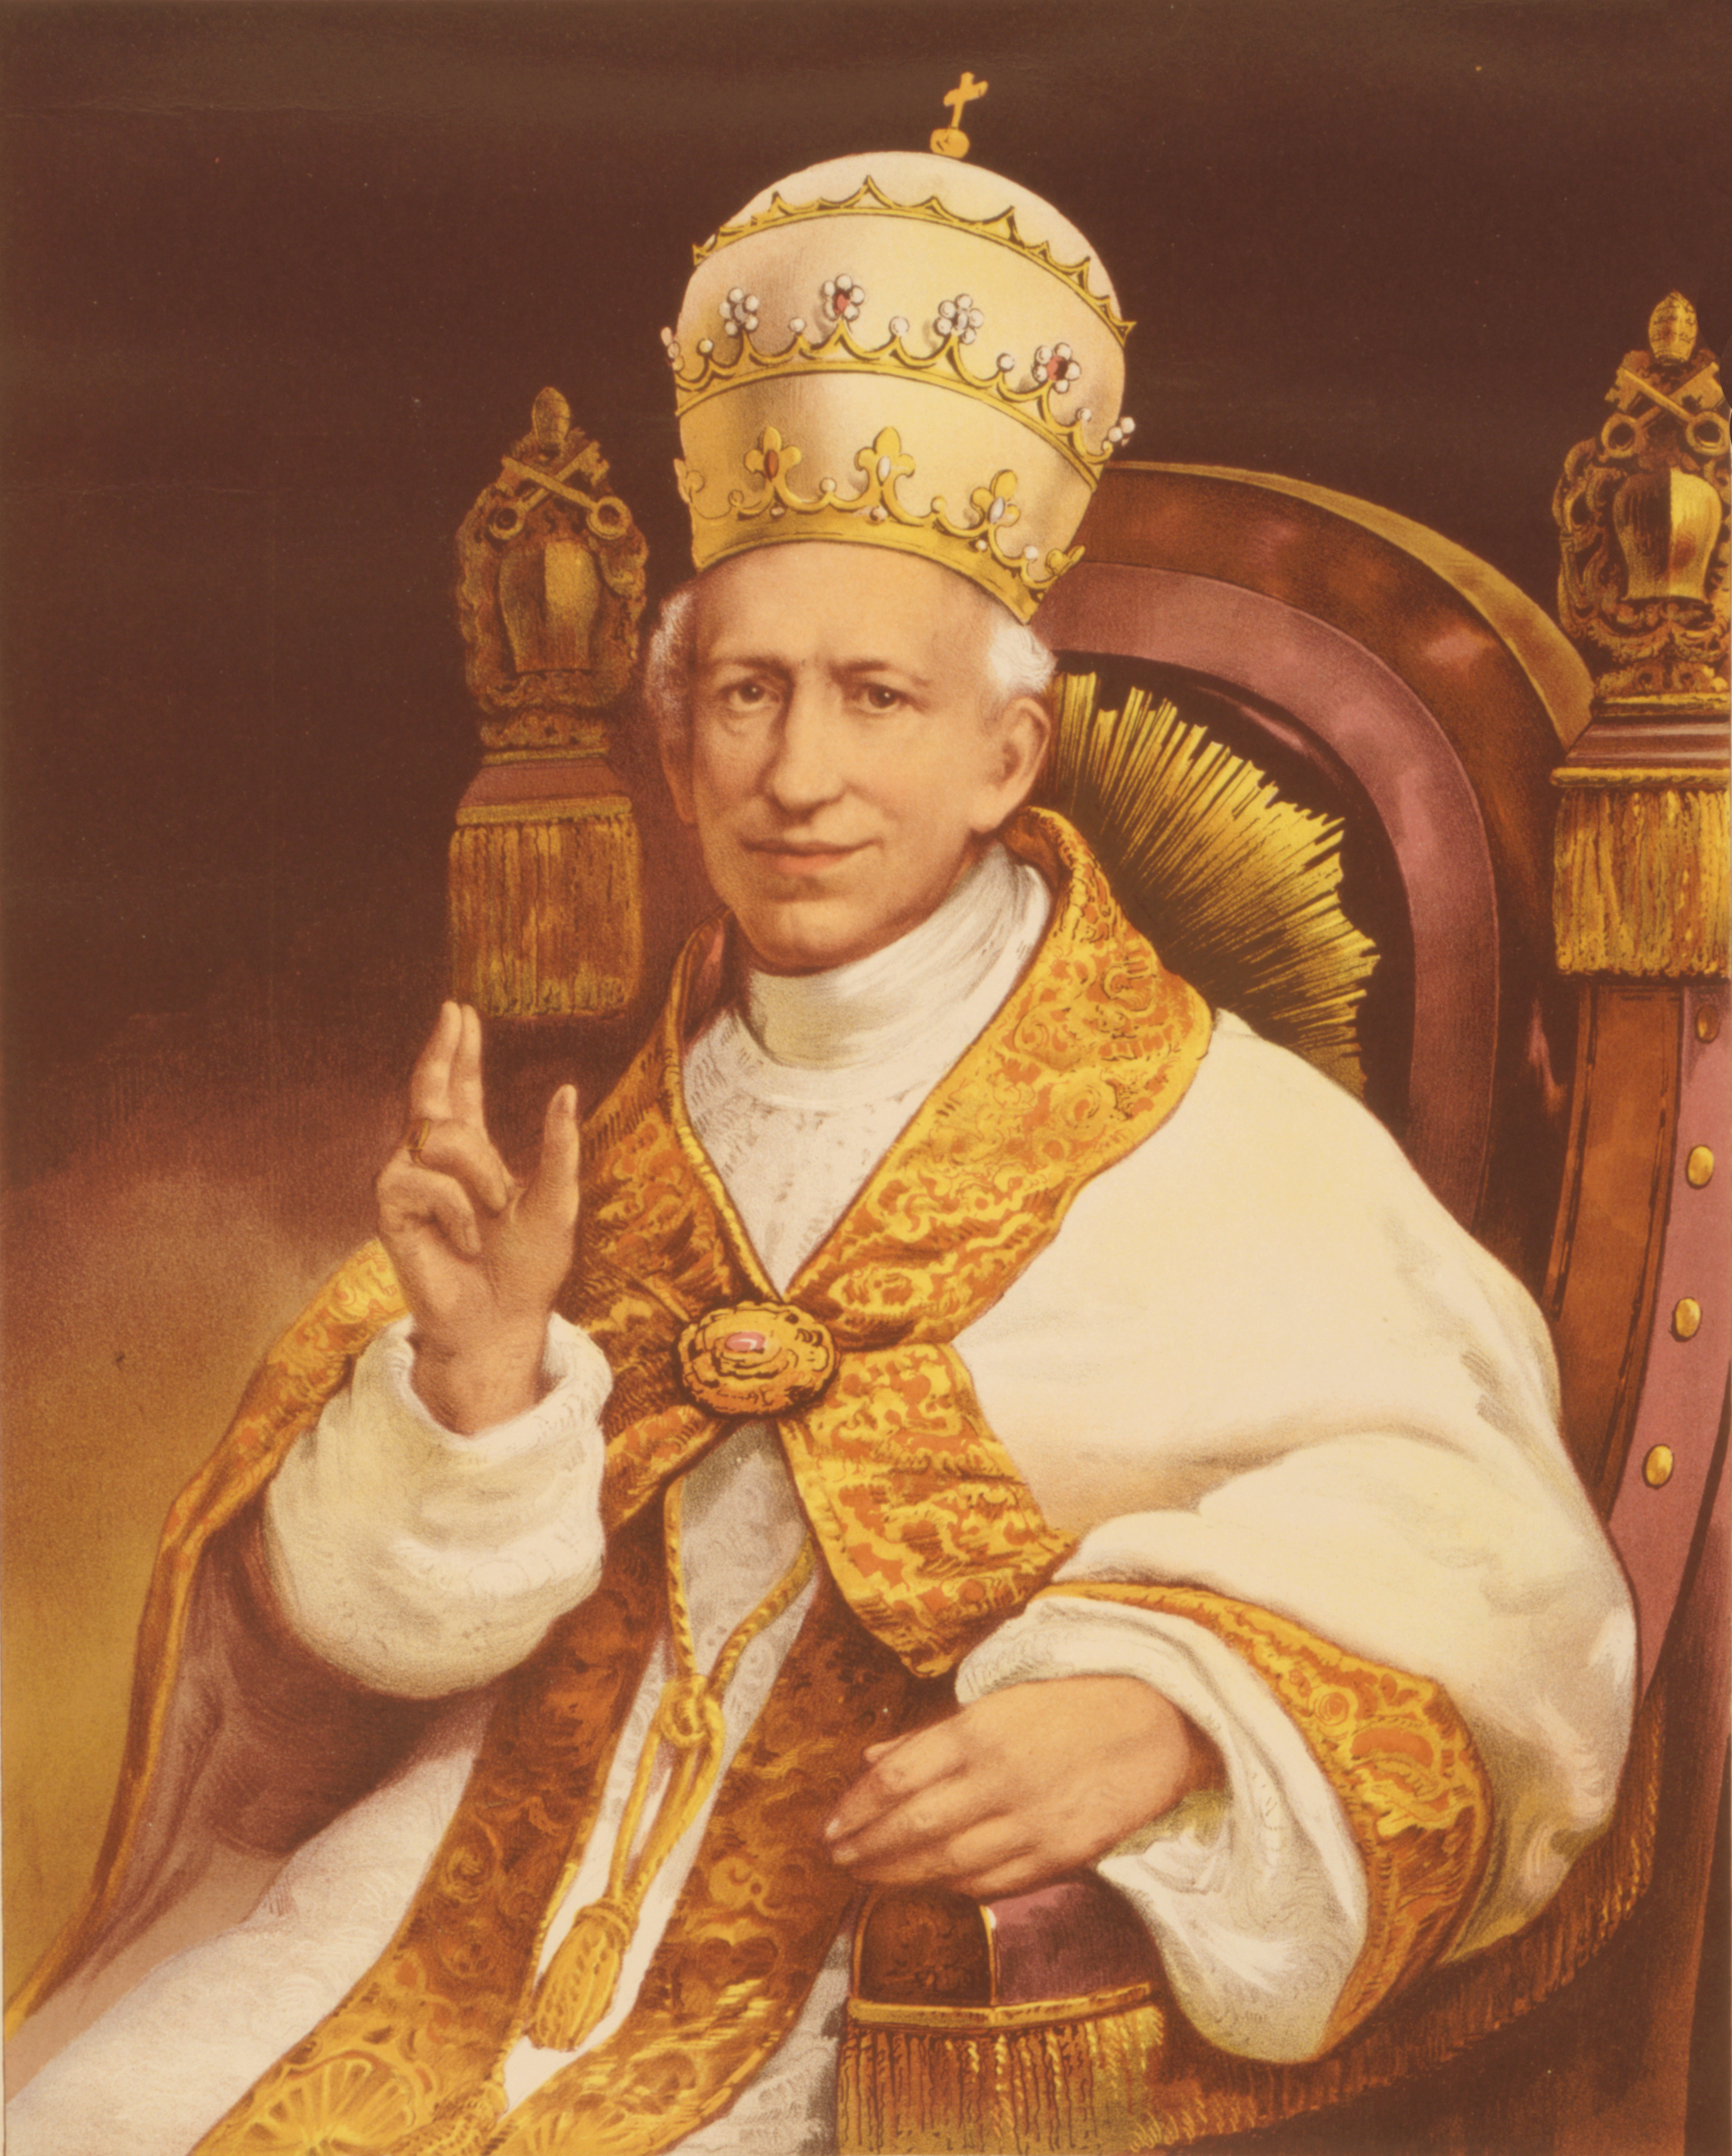 Pope Leo XIII - Authentic portrait from the Vatican album of the Ecumenical Council. (Library of Congress) [Public domain], via Wikimedia Commons